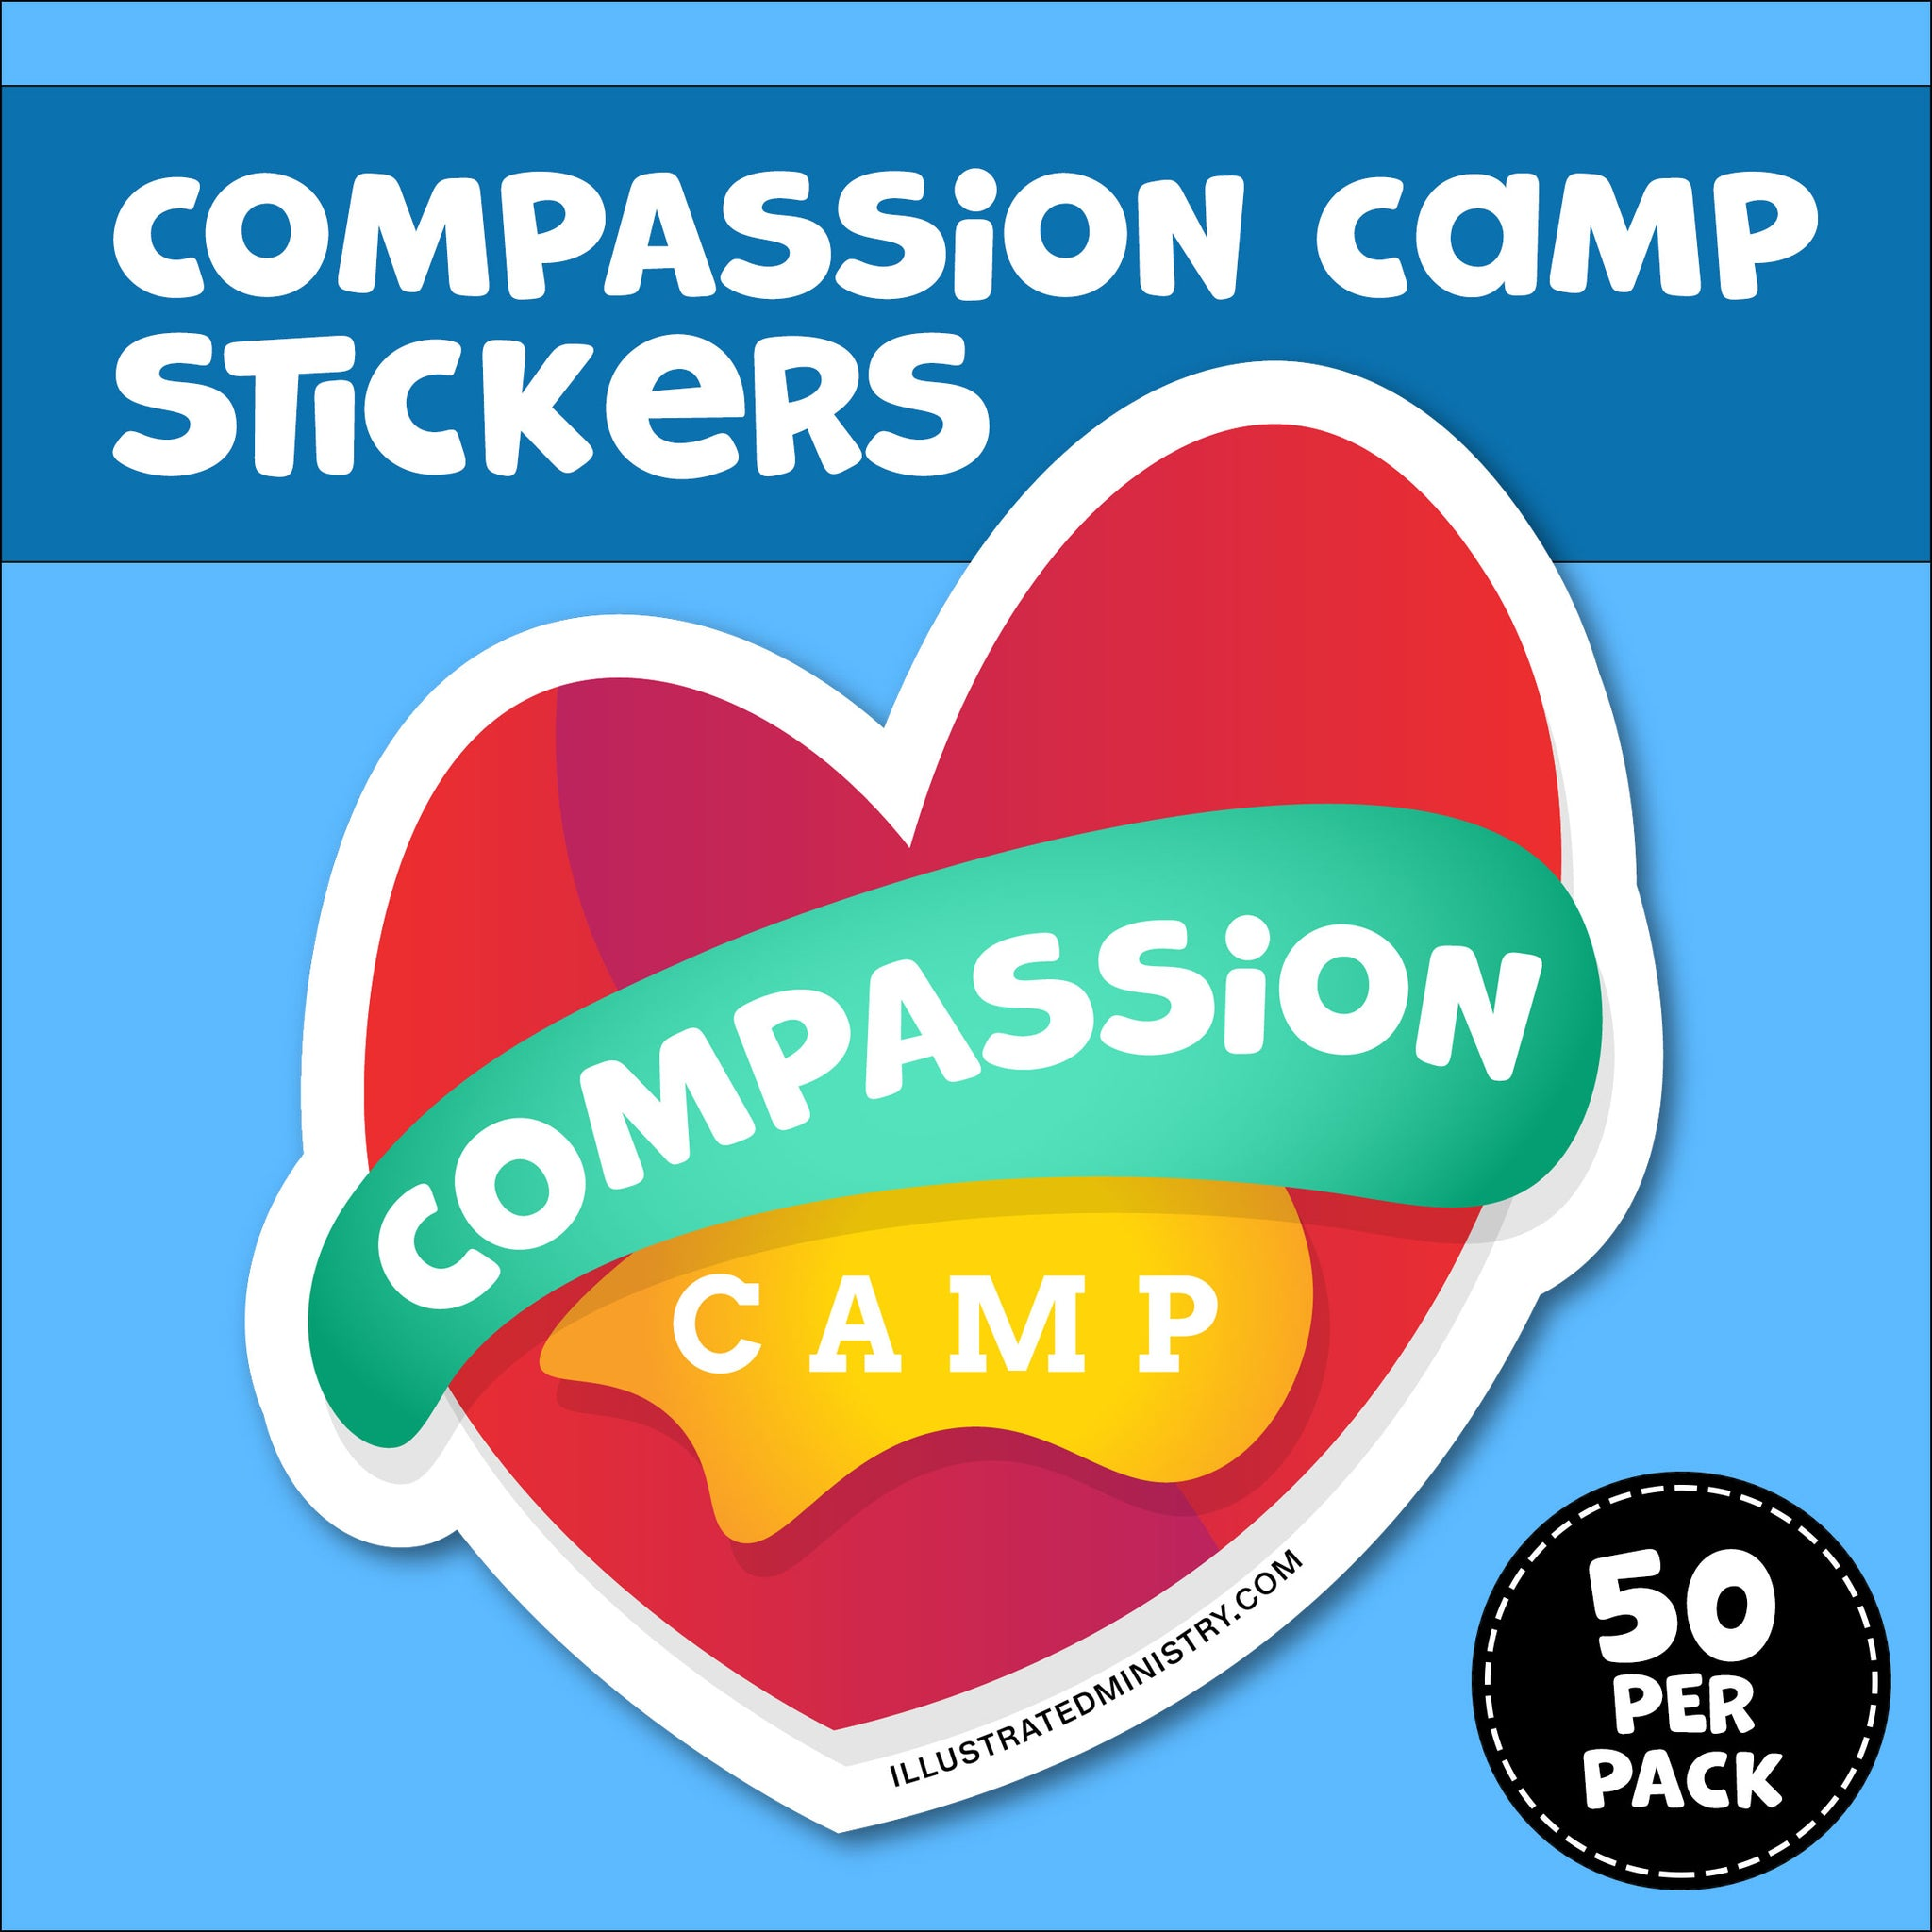 Compassion Camp Stickers